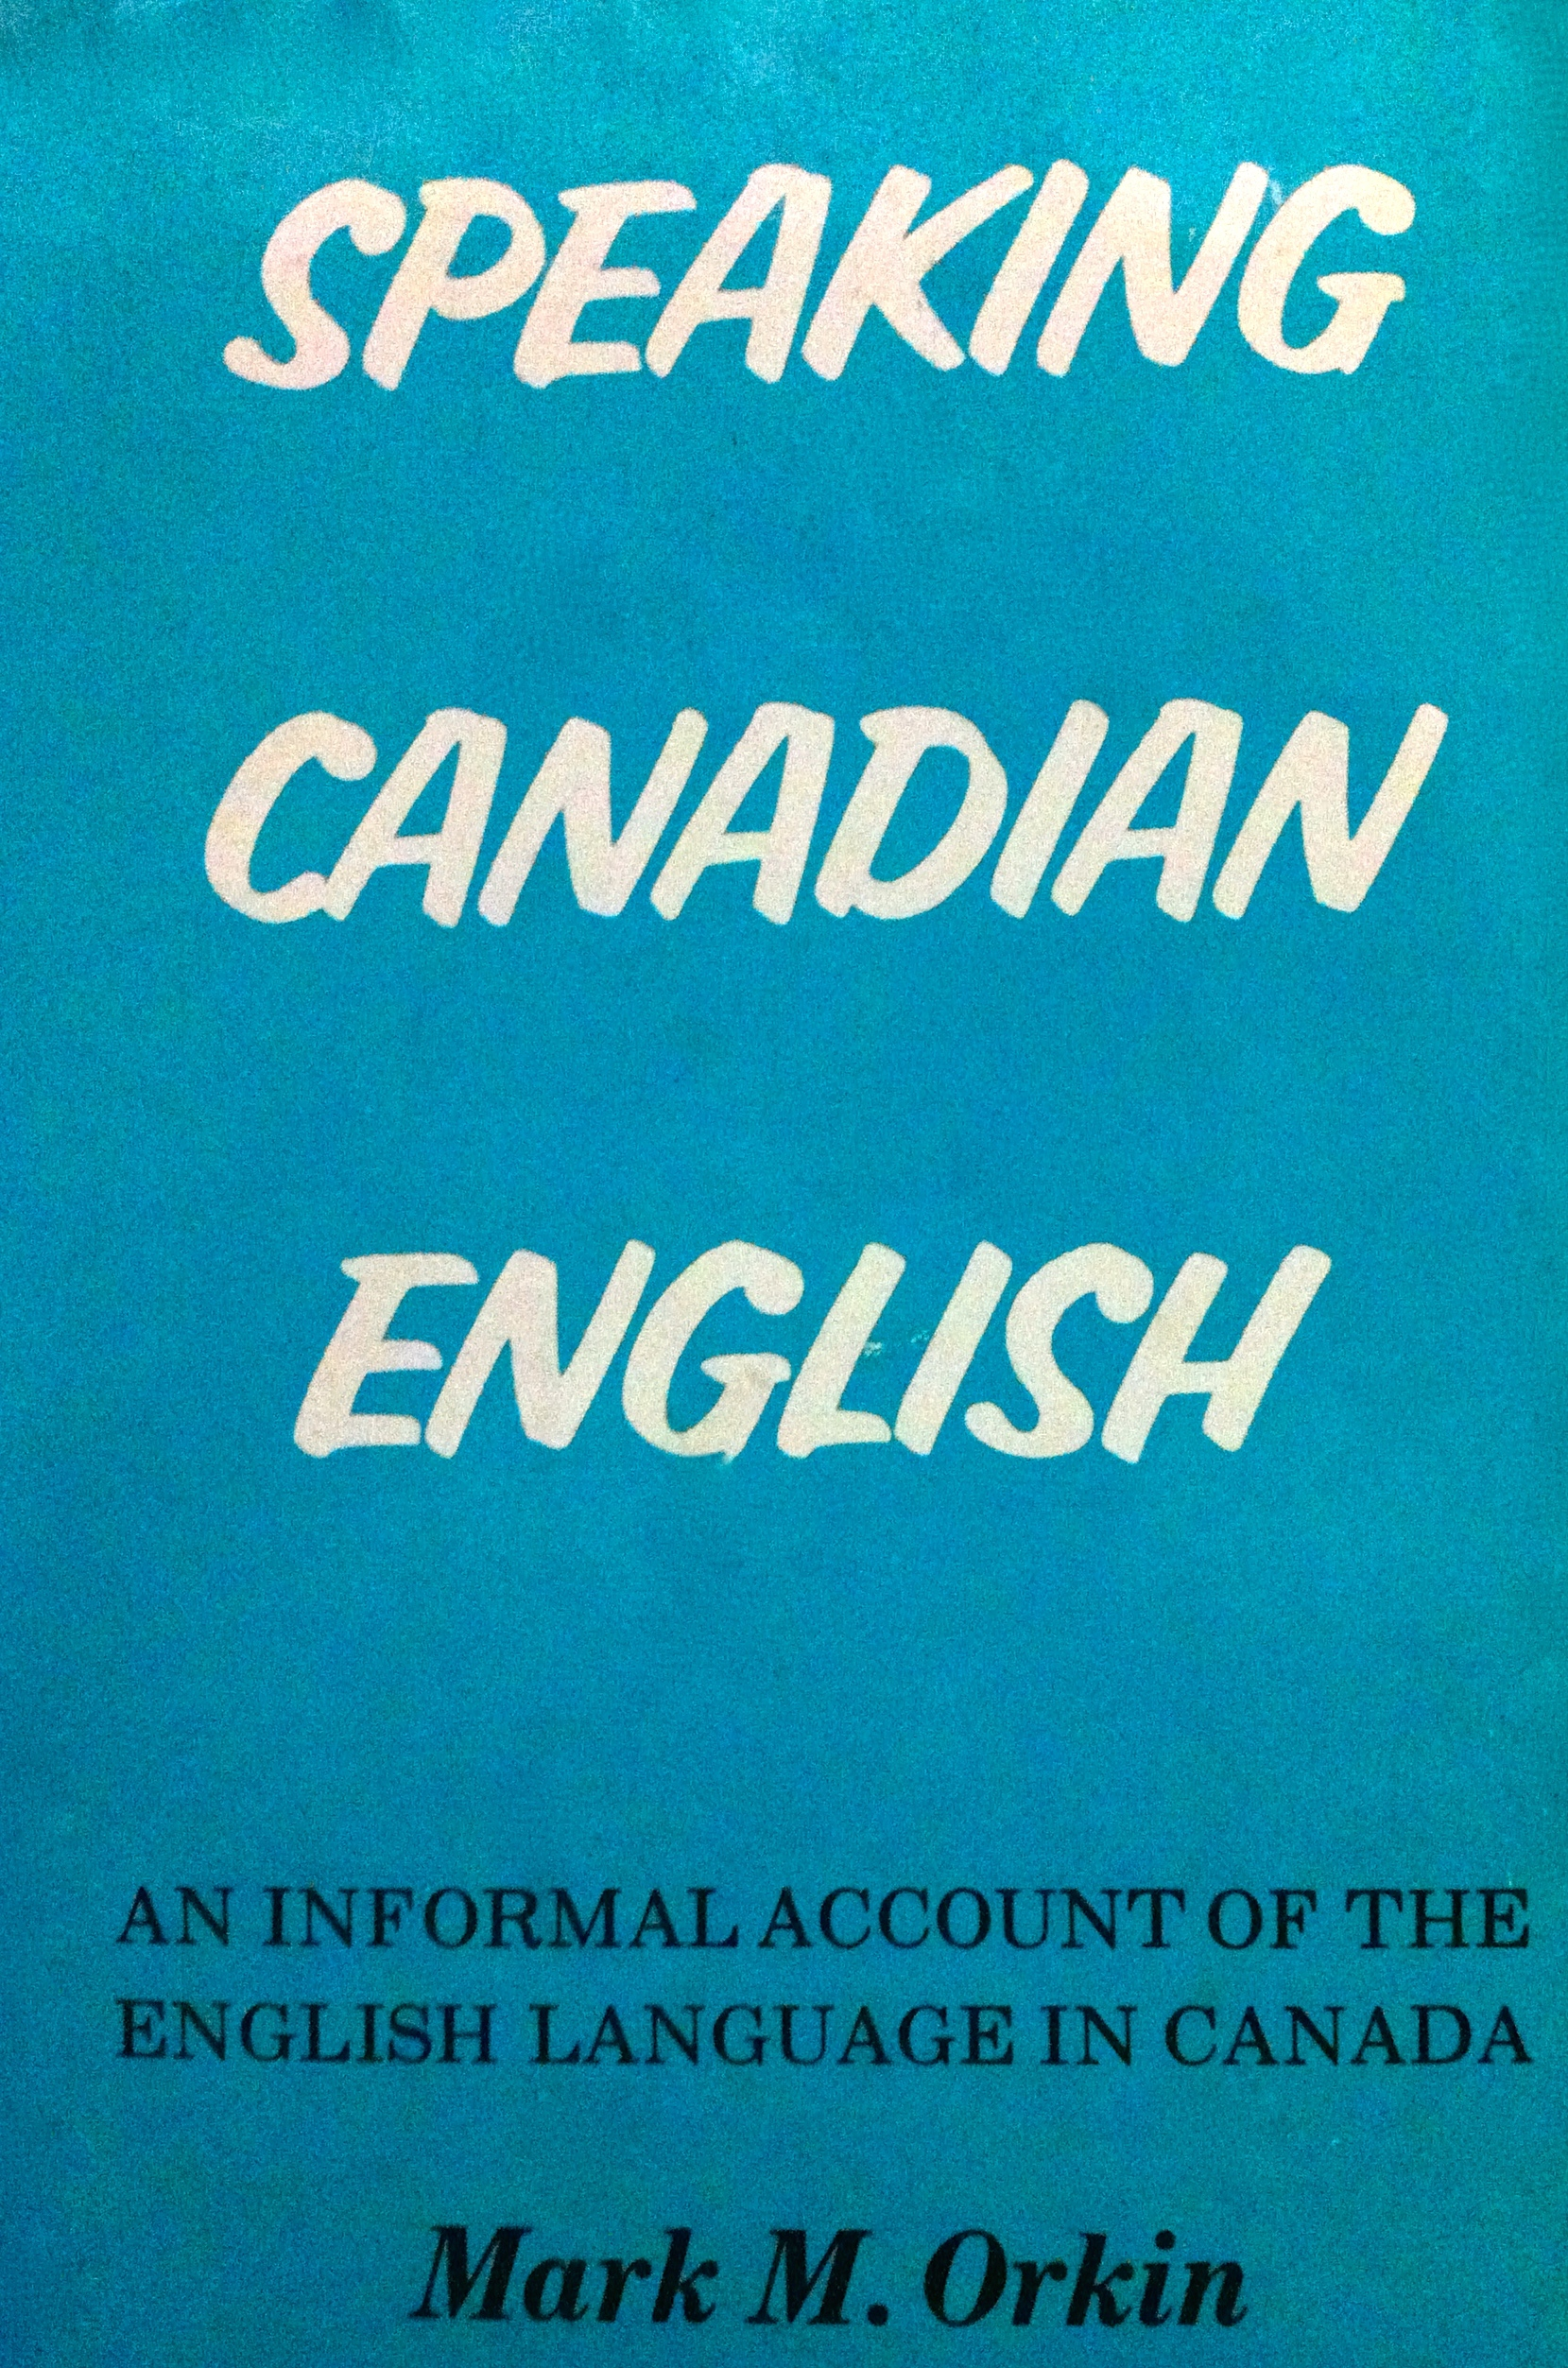 Speaking Canadian English: An Informal Account of the English Language in Canada  by  Mark M. Orkin